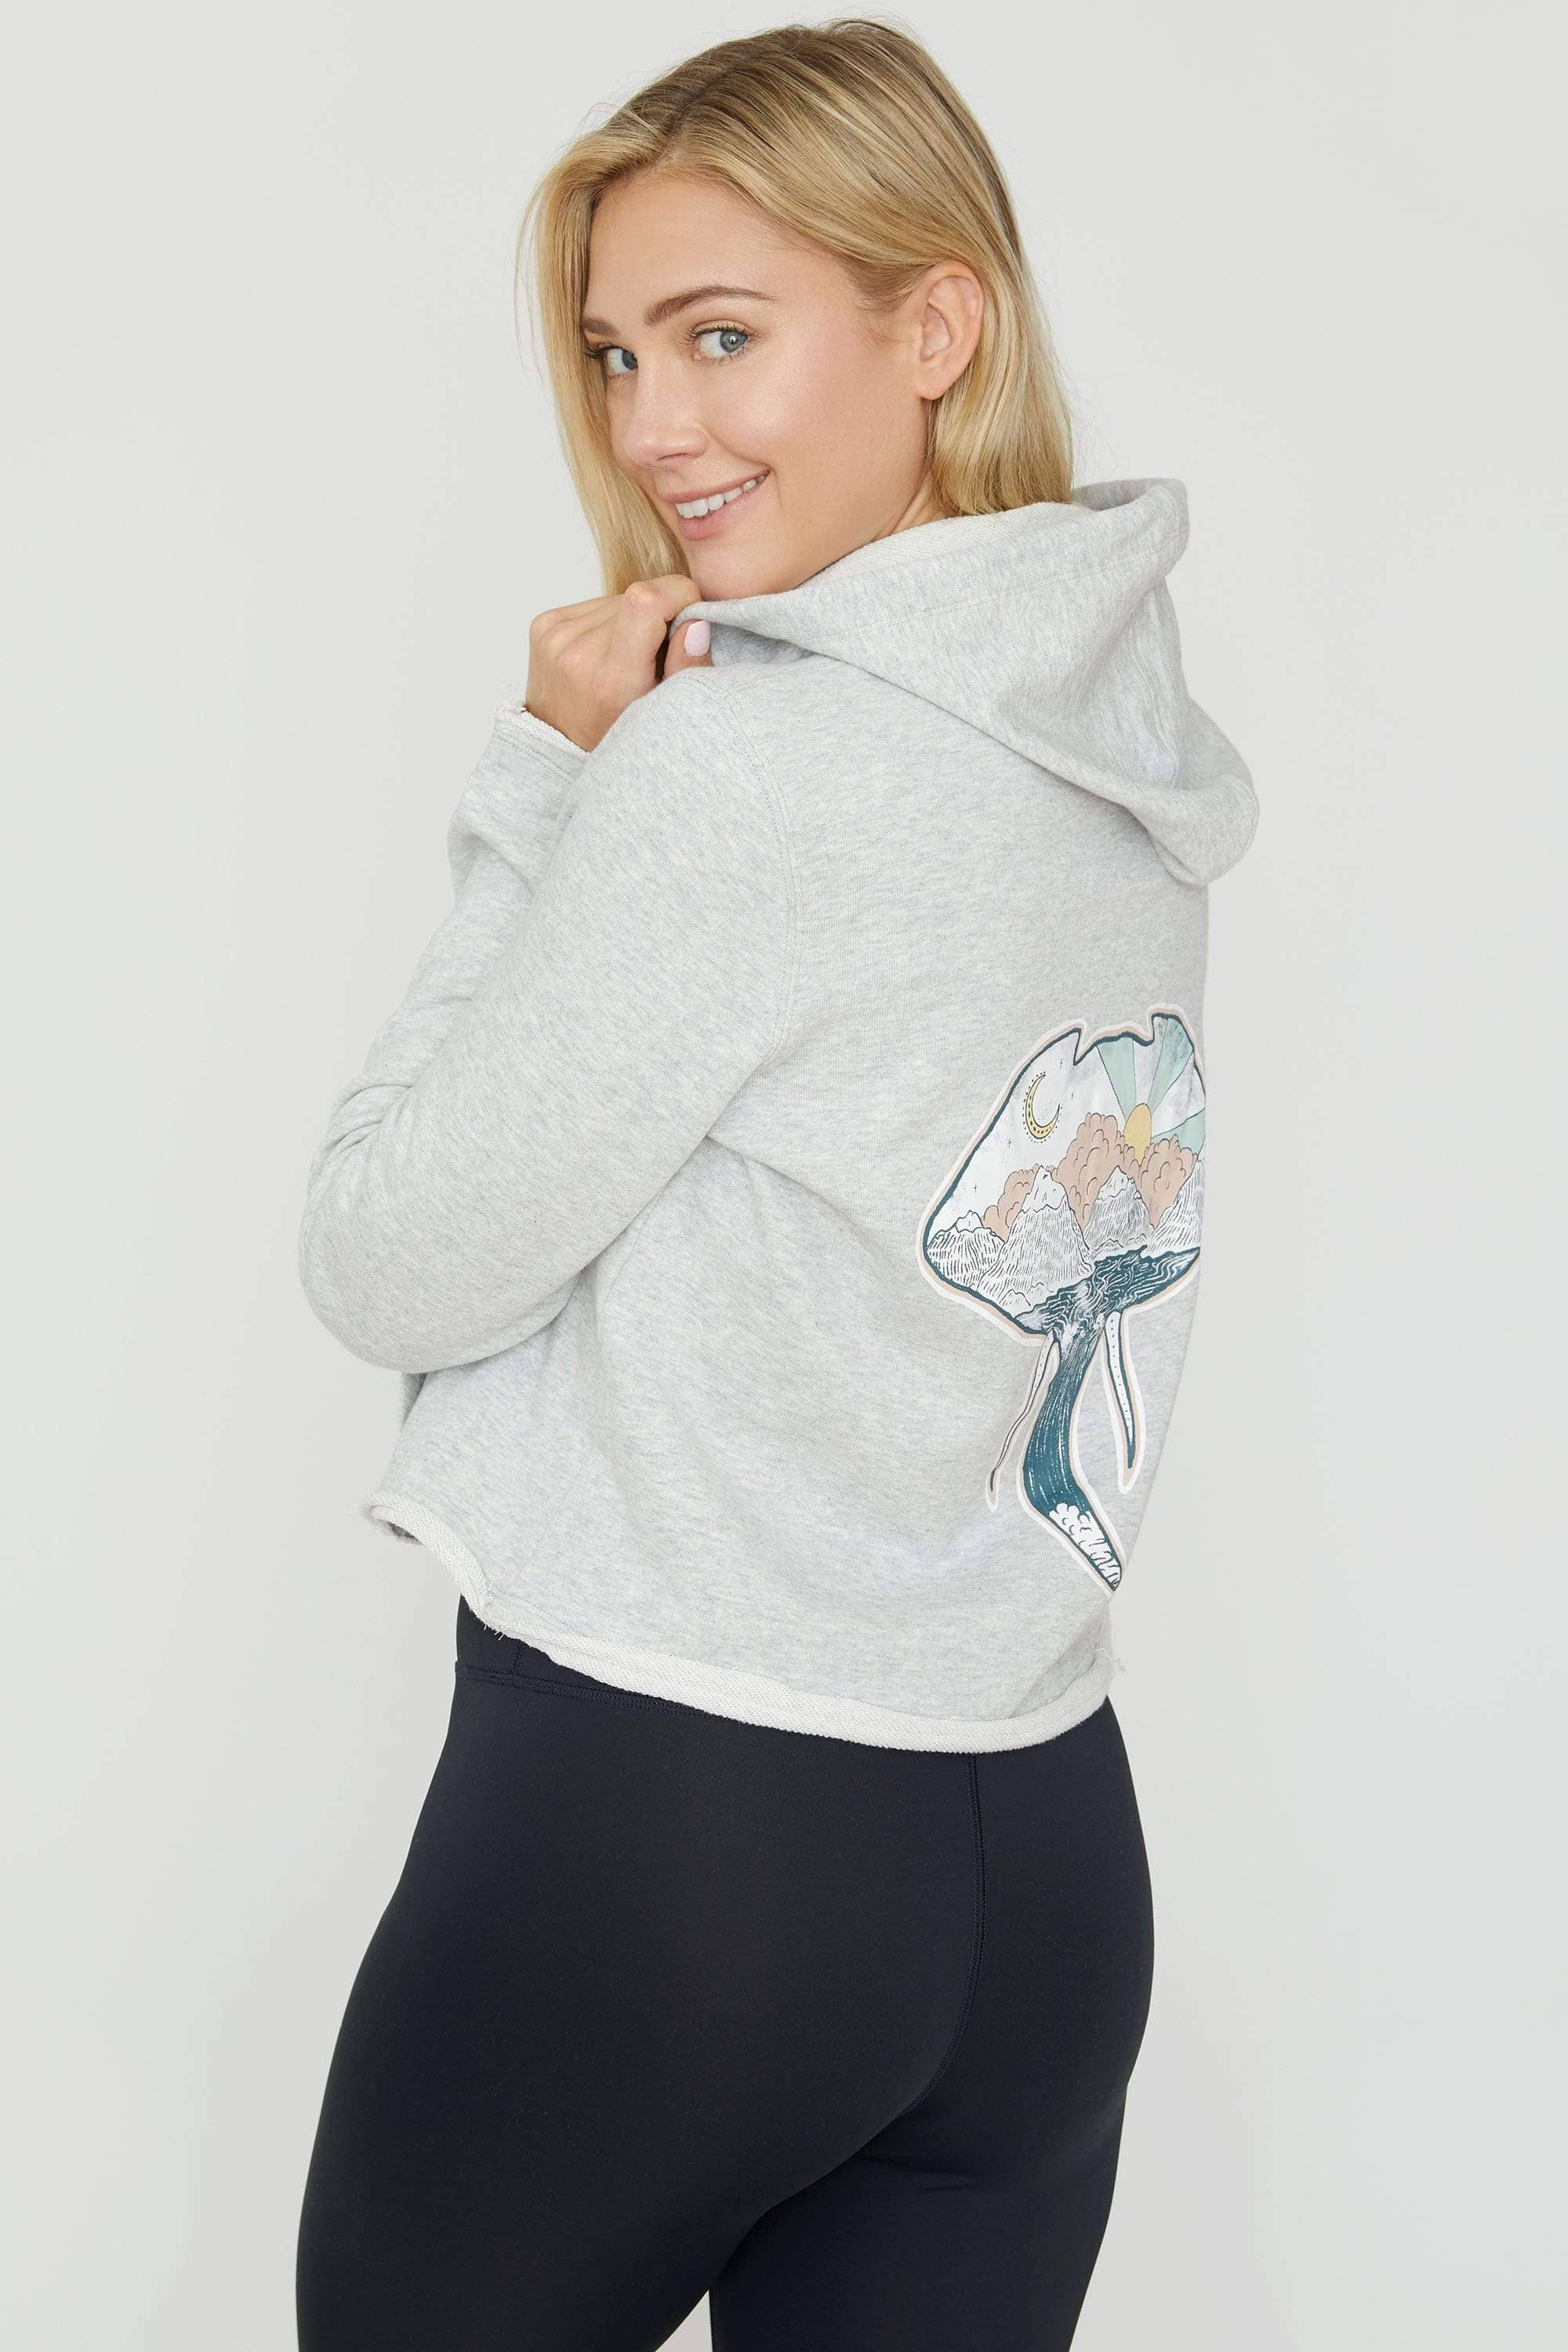 Heather Grey Cropped Zip Hoodie - Ivory Ella - Women's Sweatshirts